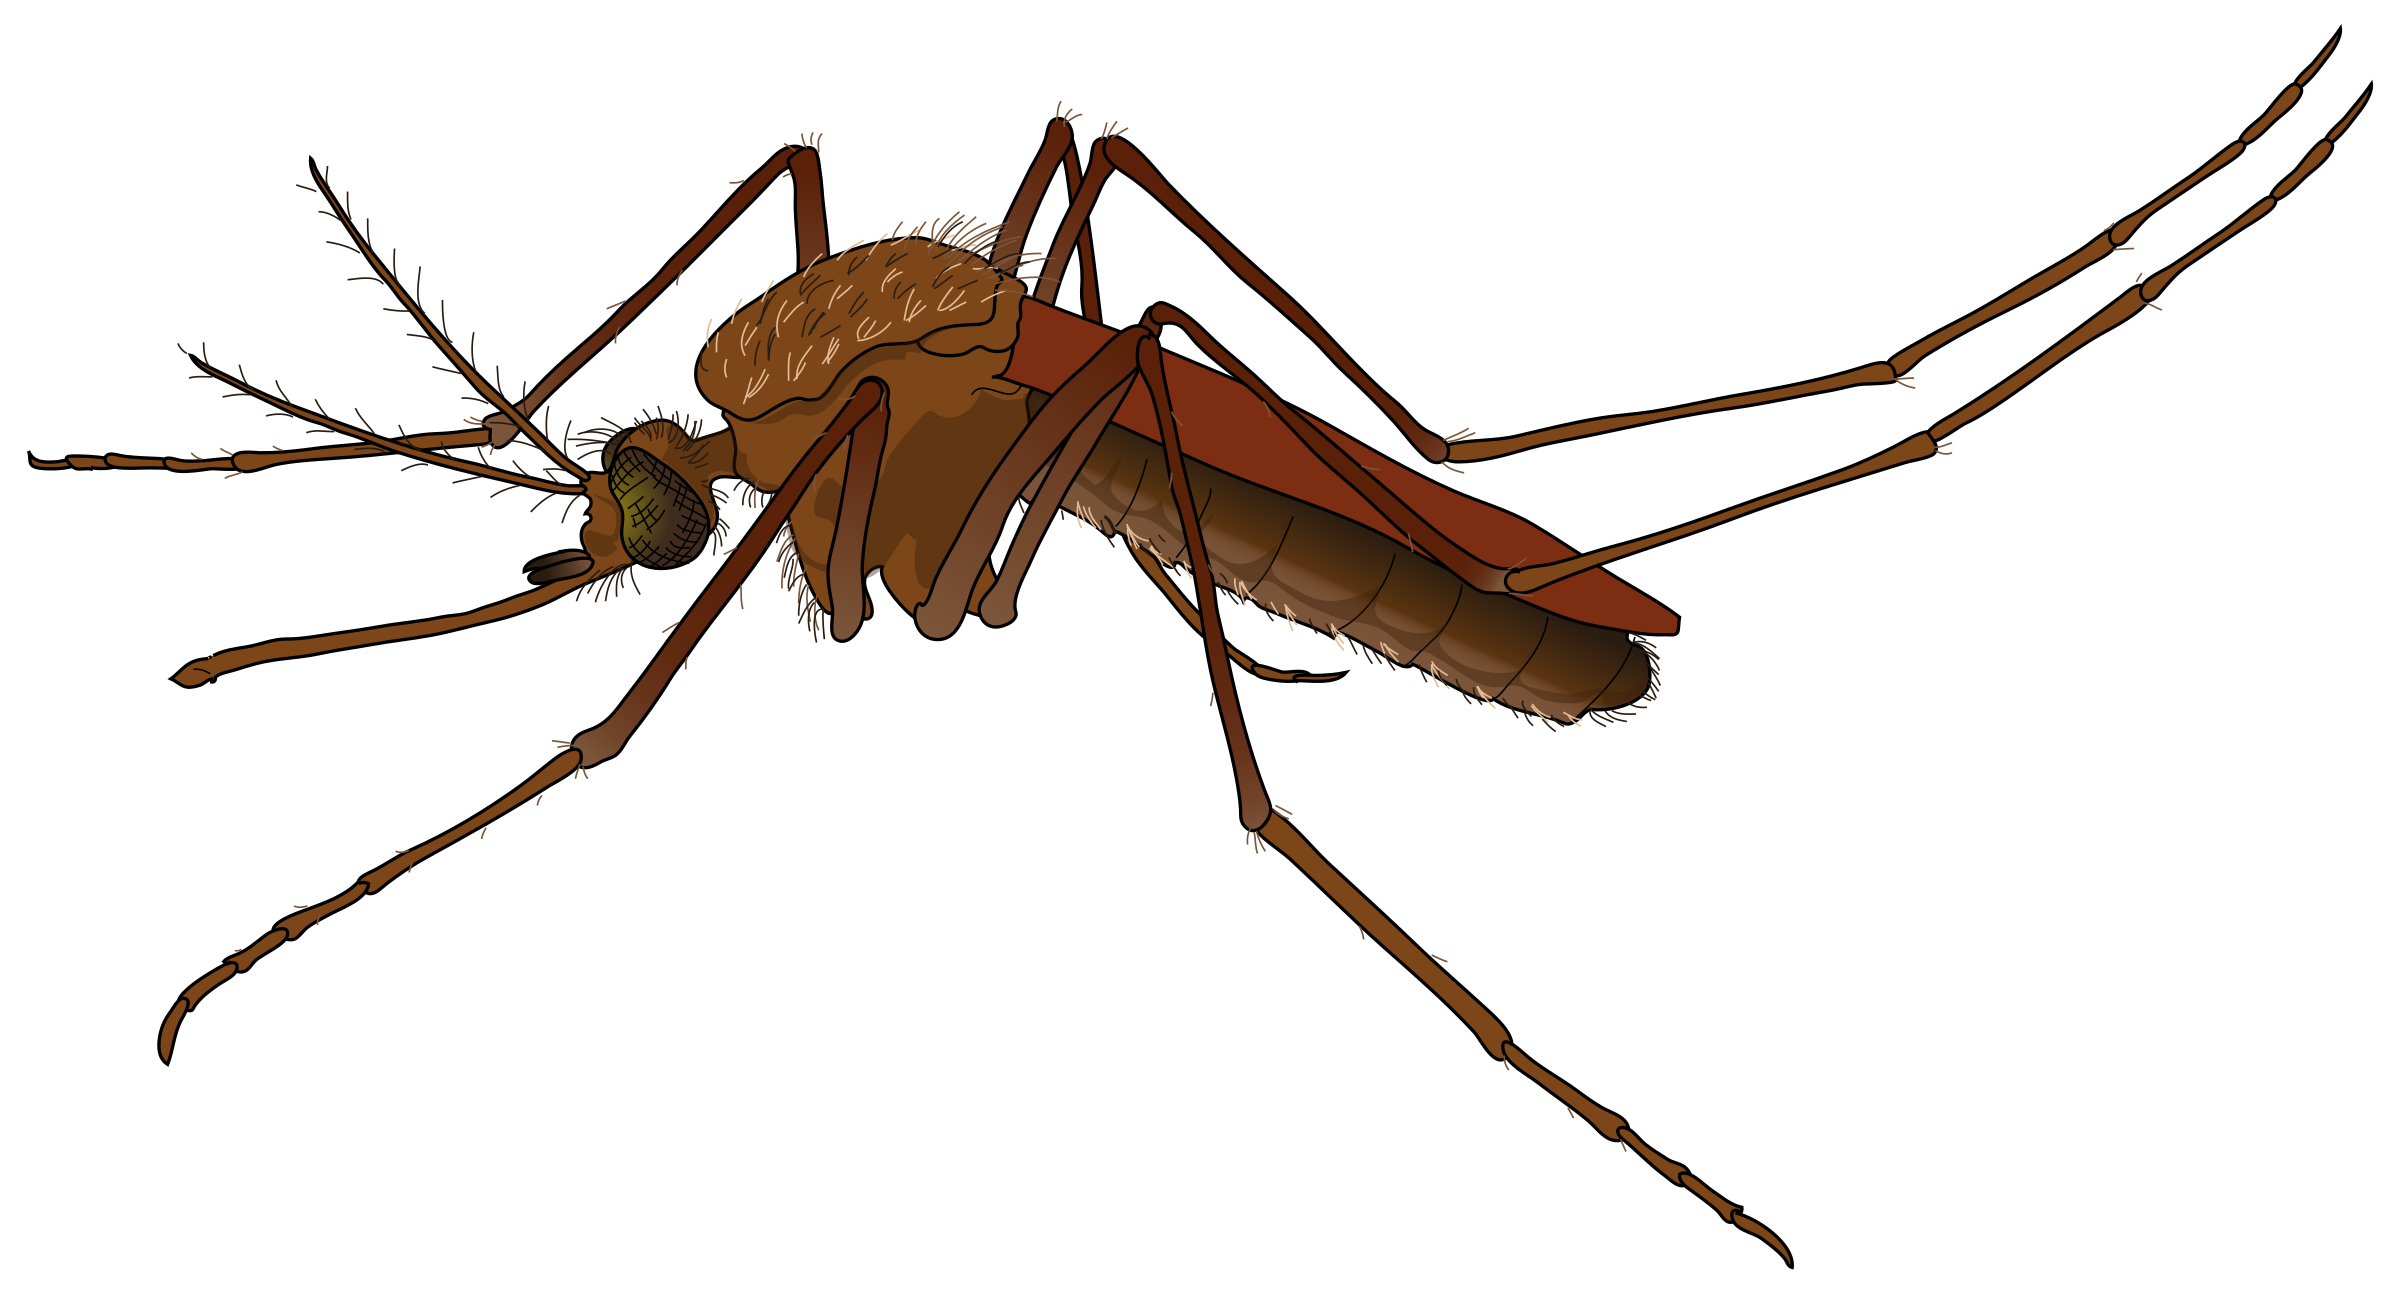 Insects clipart mosquito. Big image png